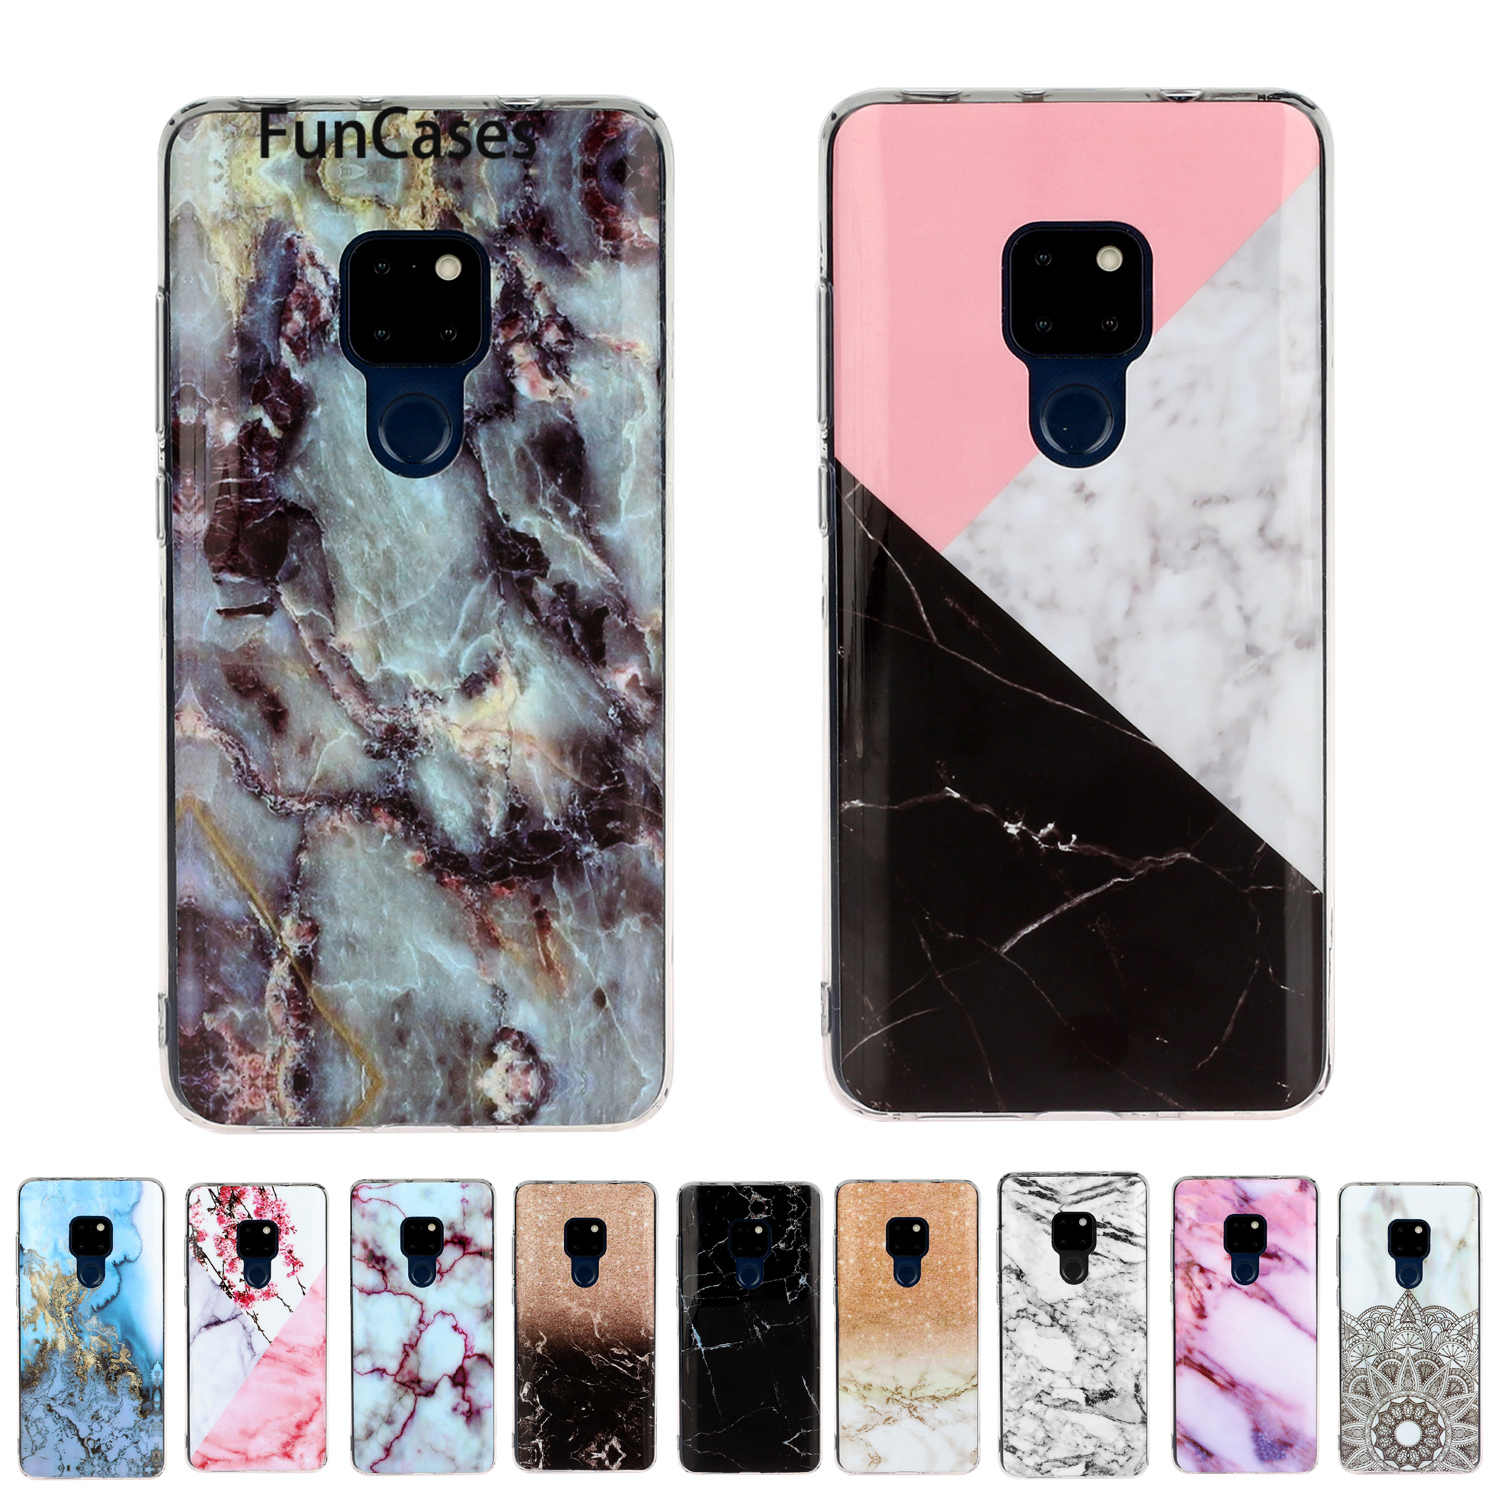 Holsters Clips Cases For Huawei Honor 8C Newest Soft TPU Shell Caso Huawei Mate 20 Y7P P Smart 2020 P40 Y5P Y6P Lite 5G Honor 8X